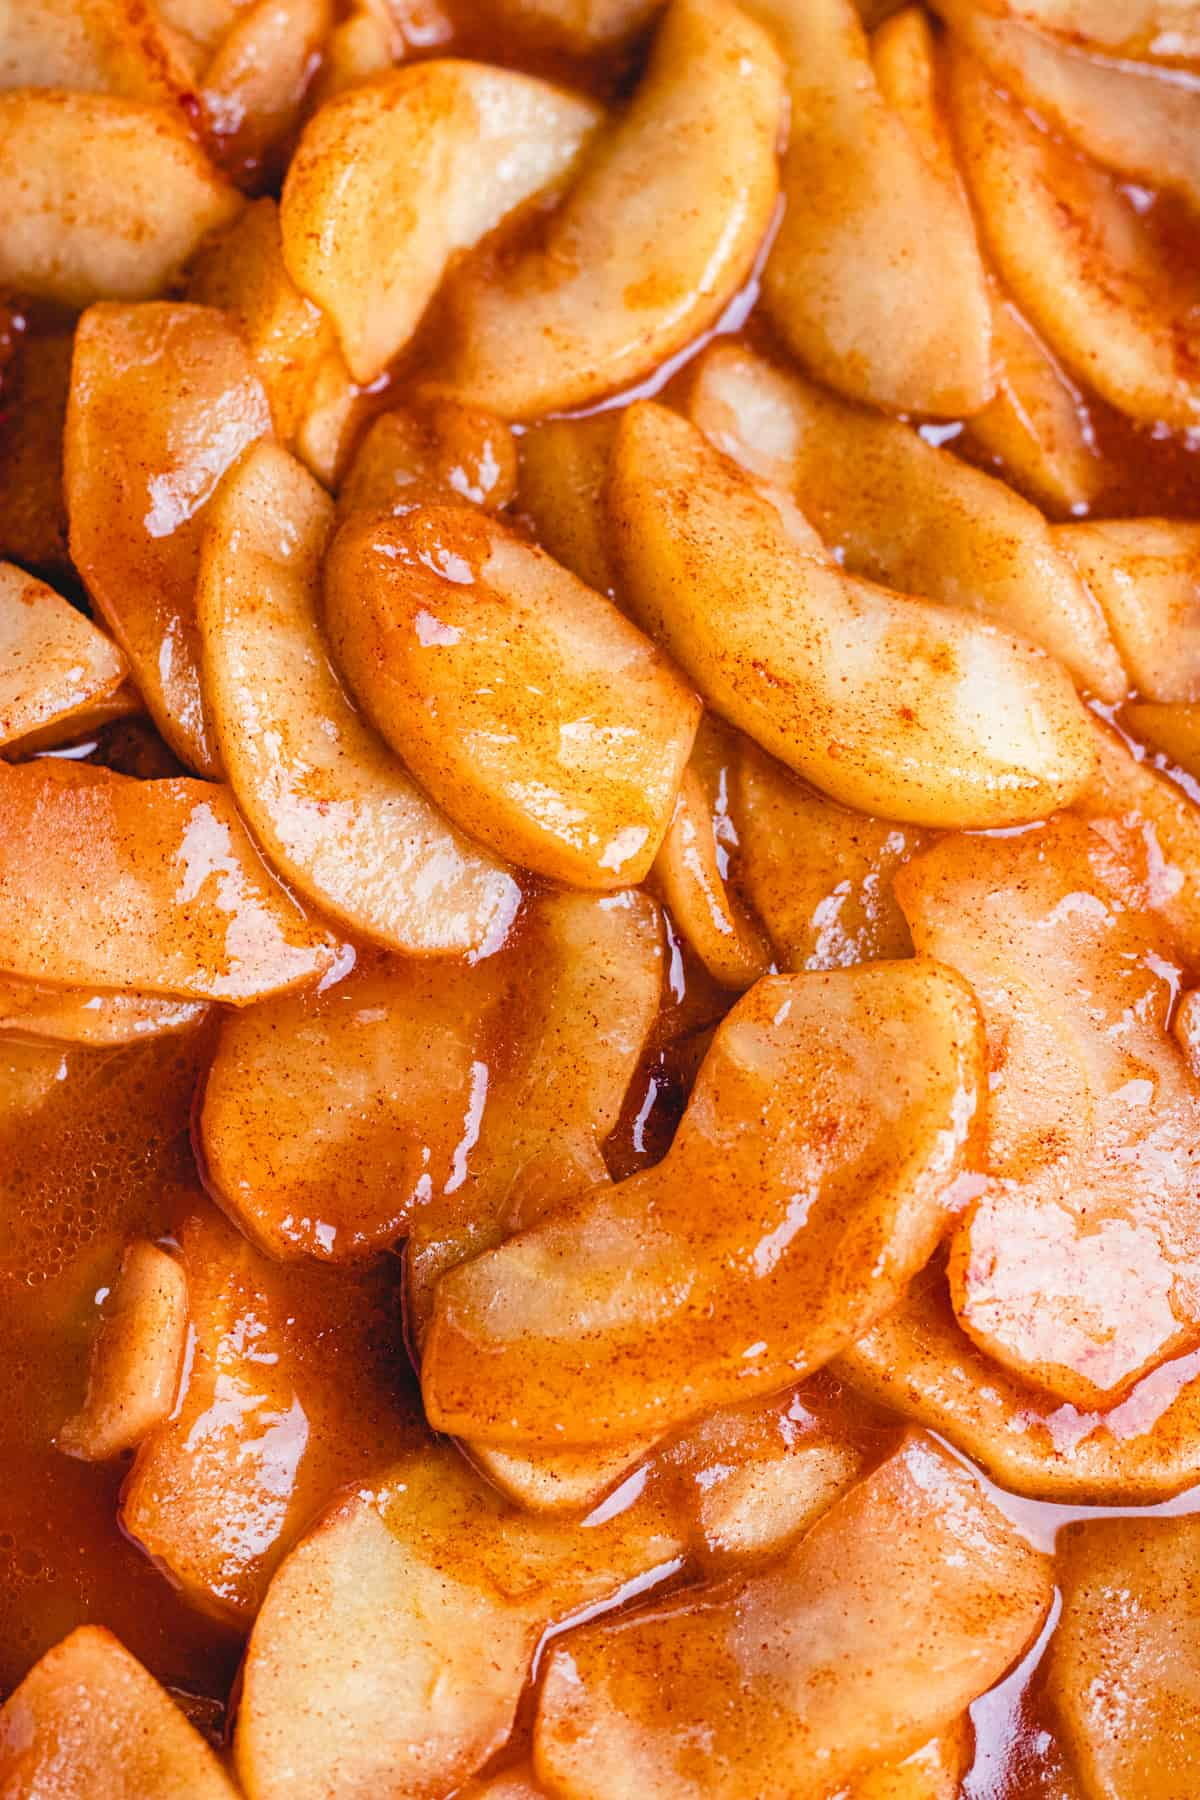 Cinnamon Baked Apples in caramelized sauce.